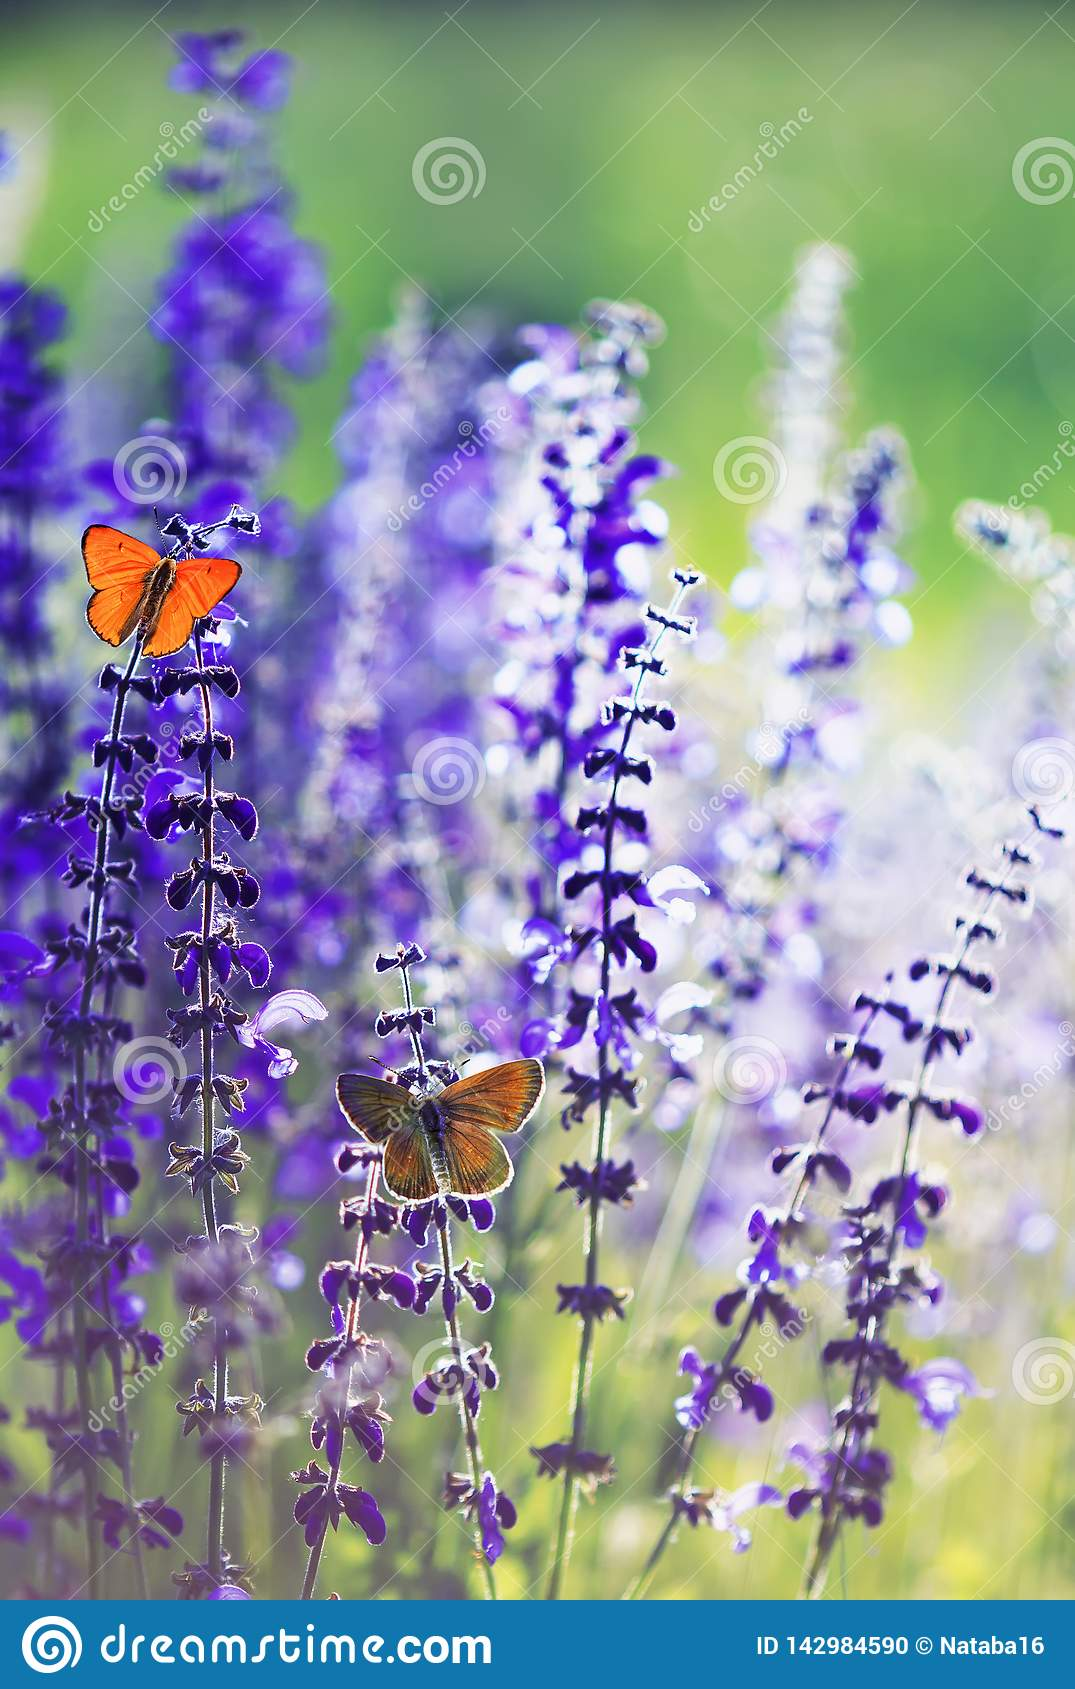 Natural background with two small bright orange butterfly Blues sitting on purple flowers in summer Sunny day on a rural meadow